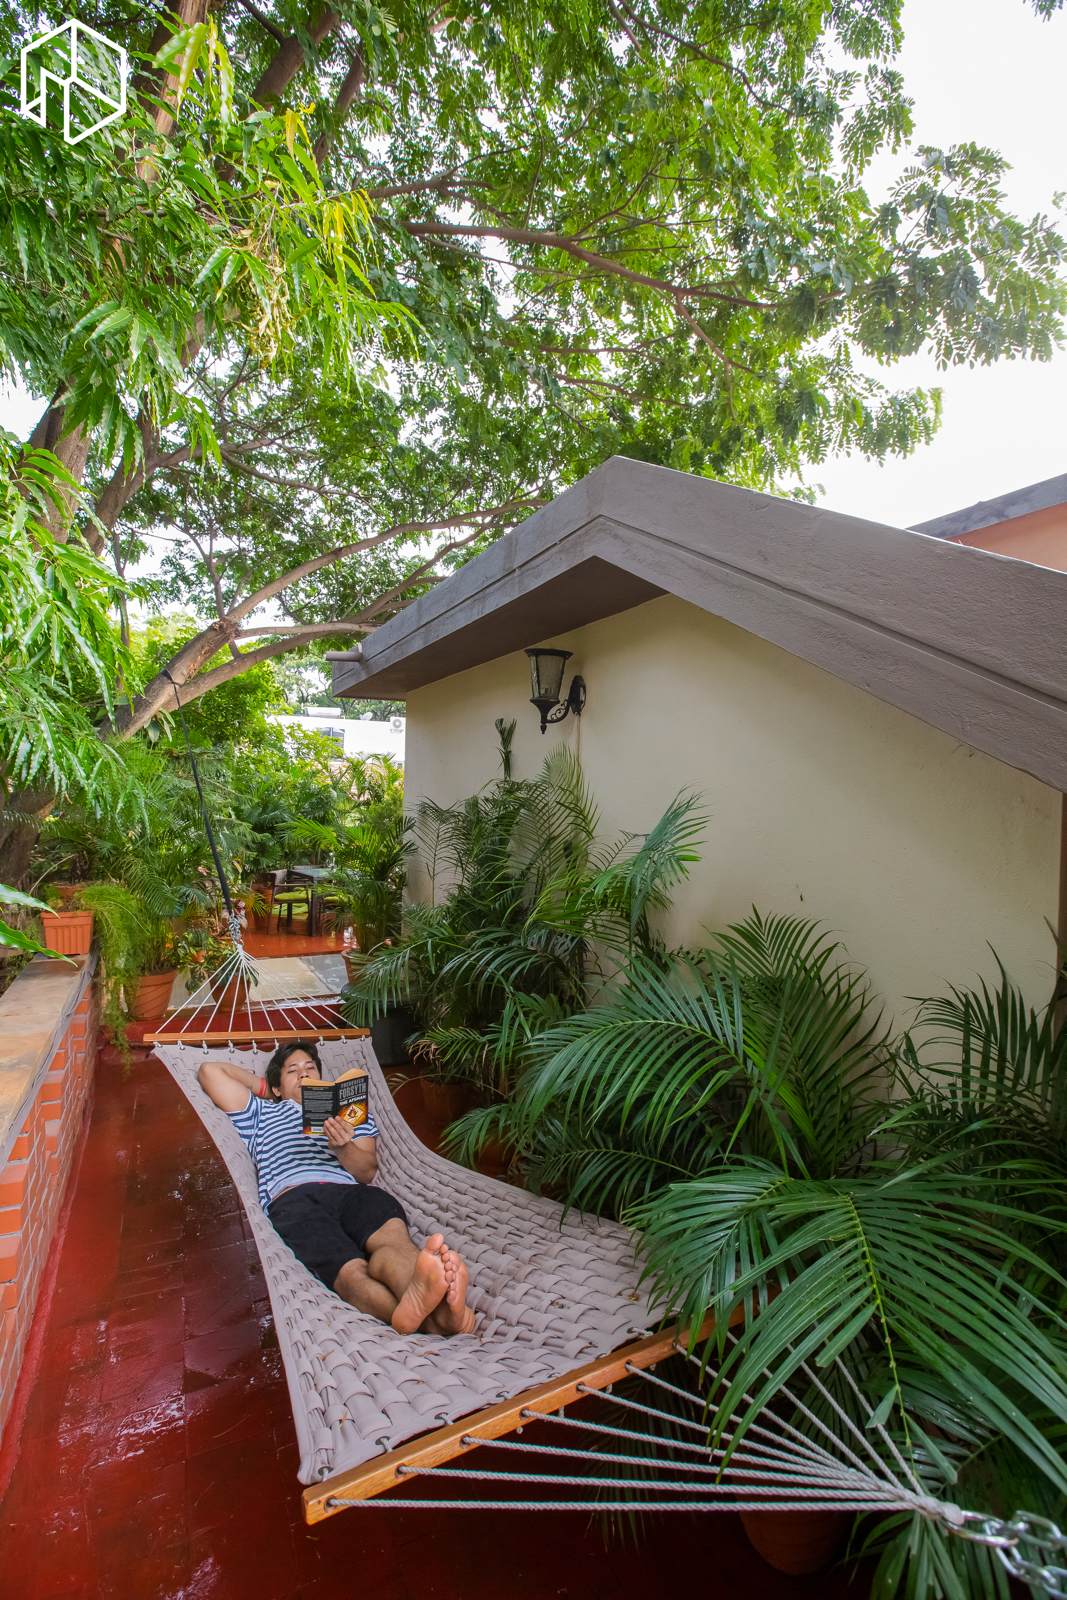 Best Airbnb Home in Bangalore.